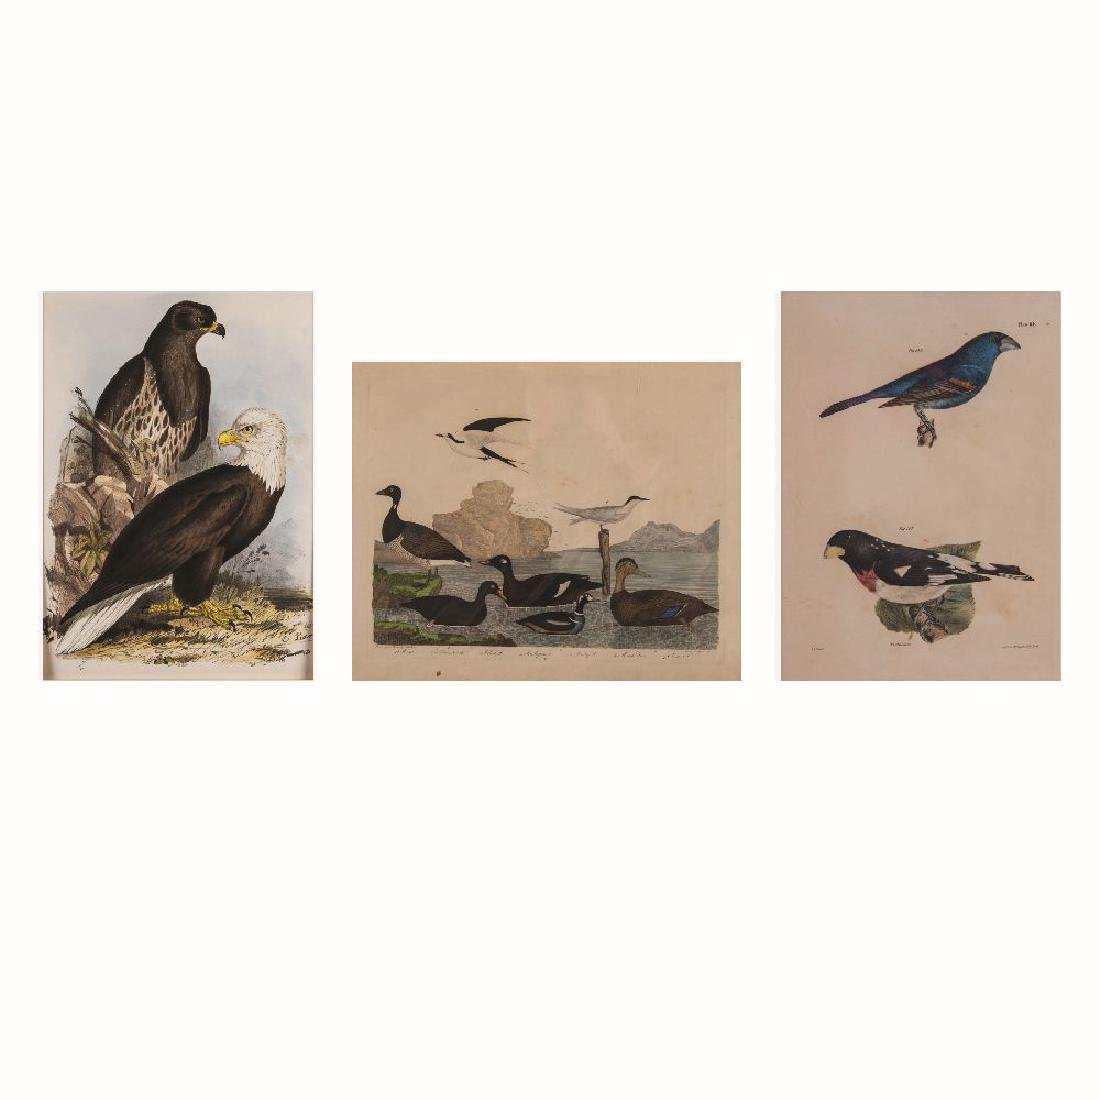 A Group of Three Colored Lithographs Depicting Birds by